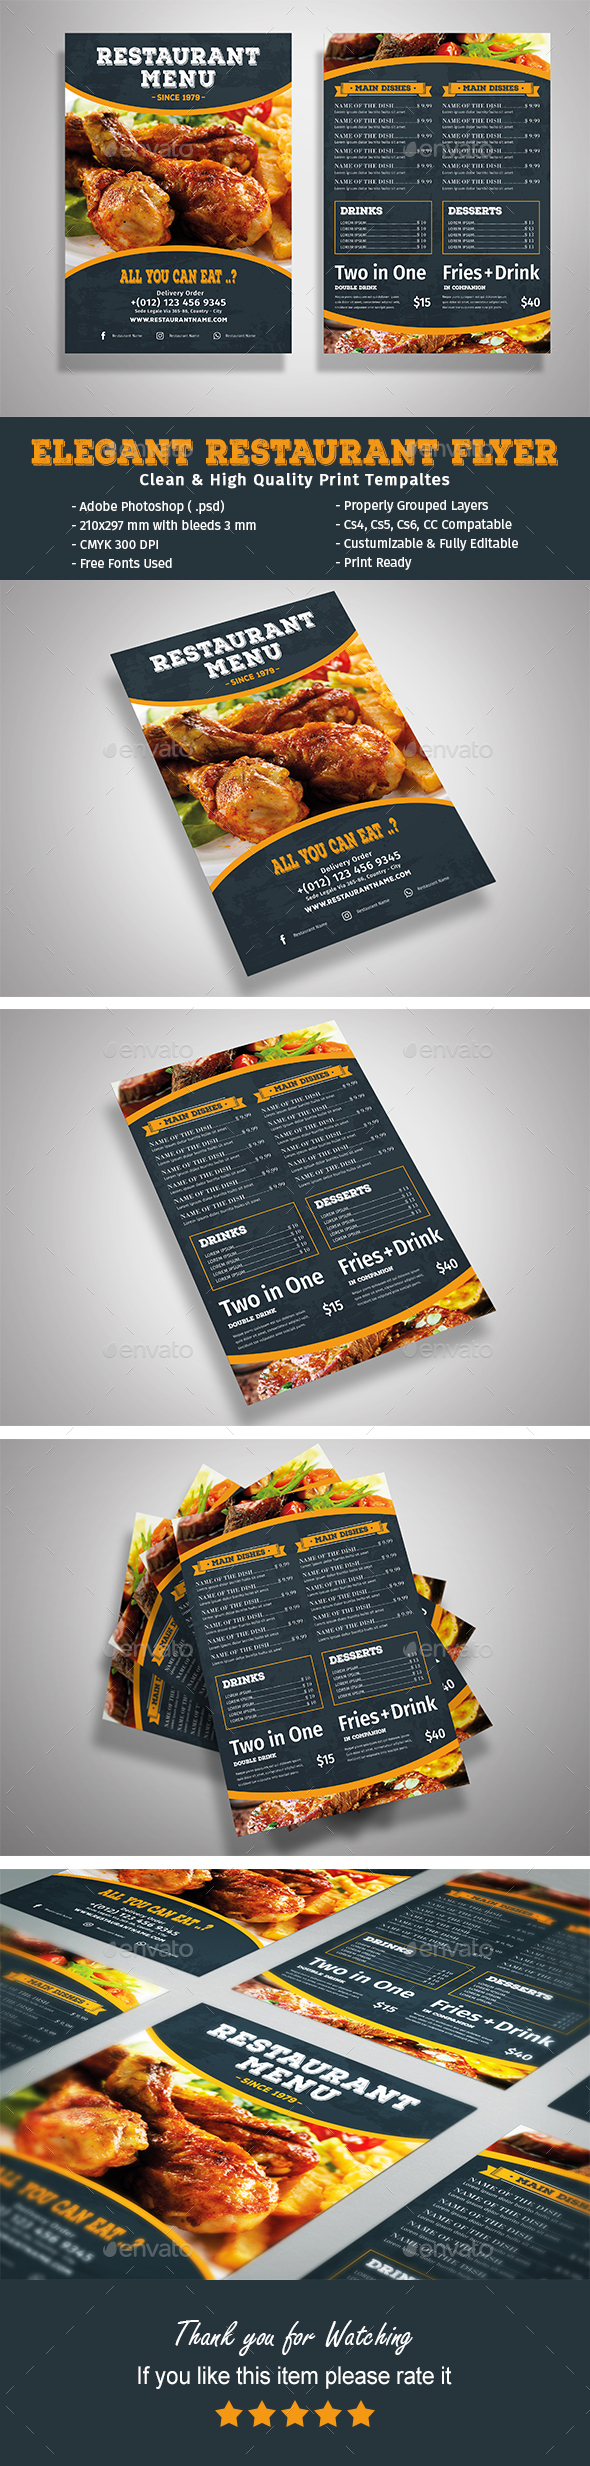 Elegant Restaurant Flyer Template - Food Menus Print Templates